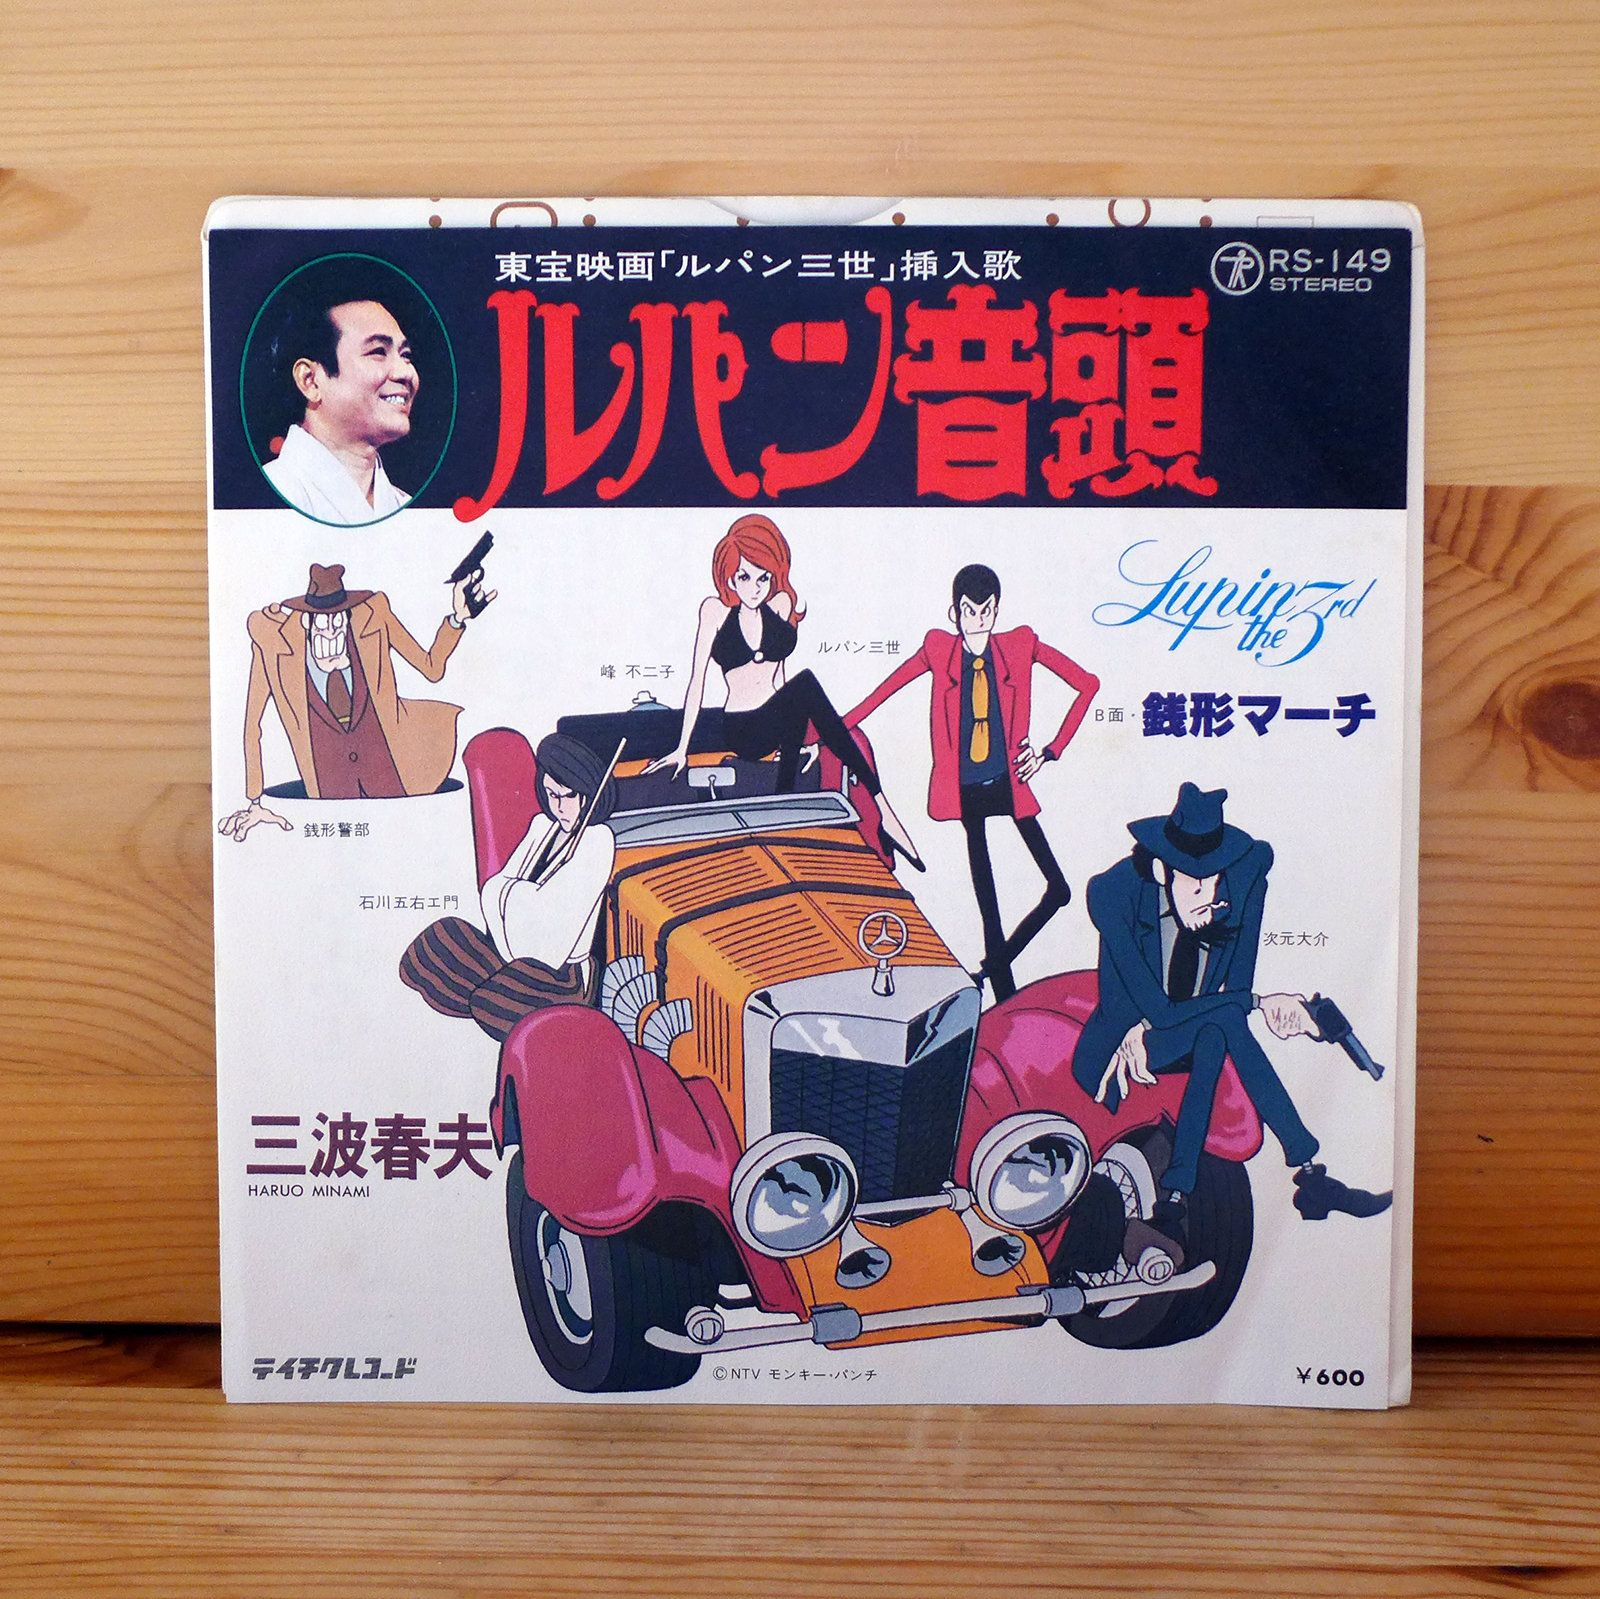 Anime movie Lupin the 3rd inserted song Lupin Etsy